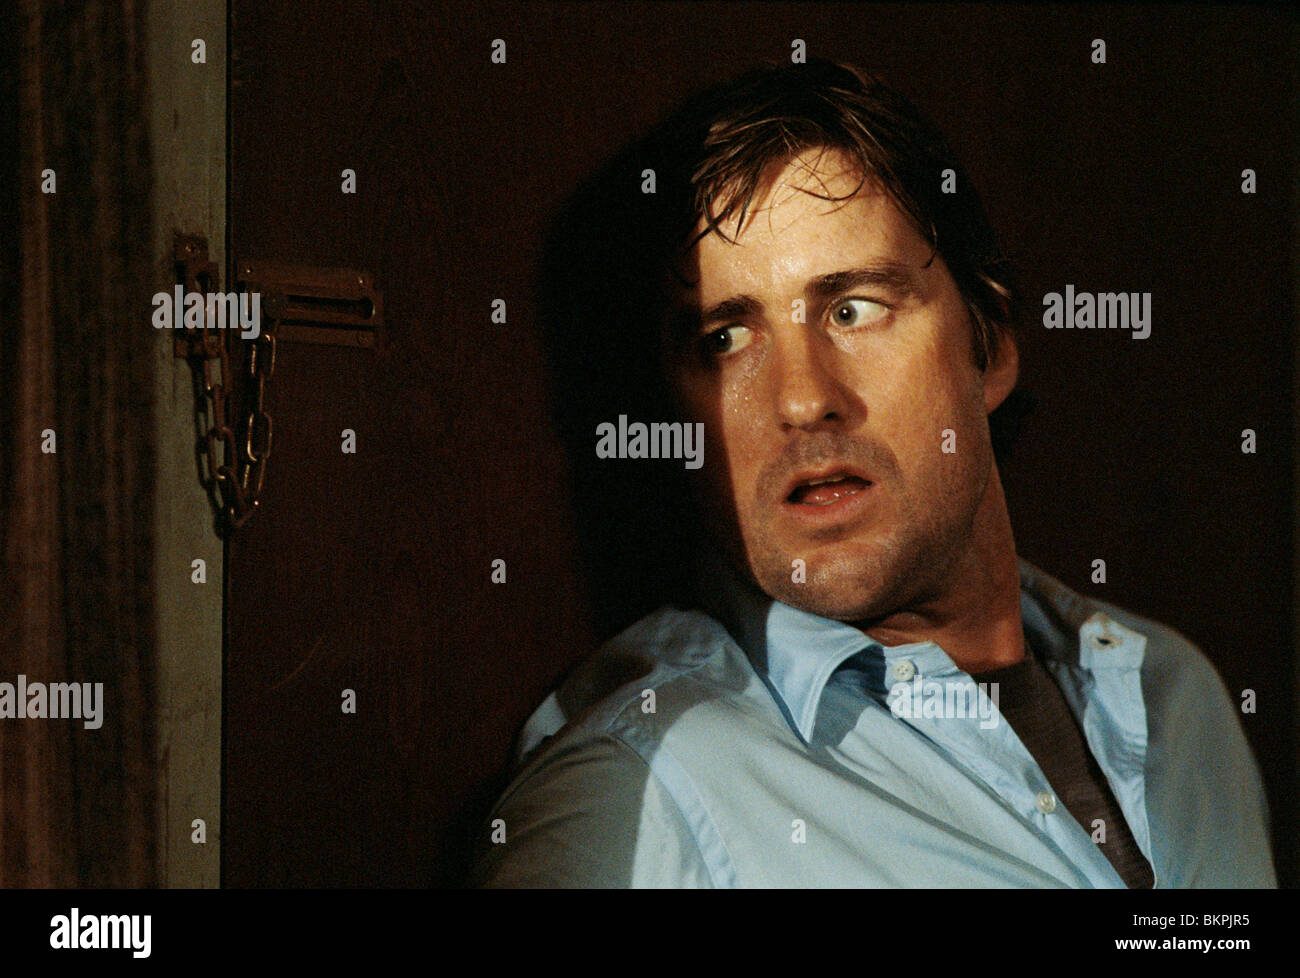 VACANCY -2007 LUKE WILSON - Stock Image